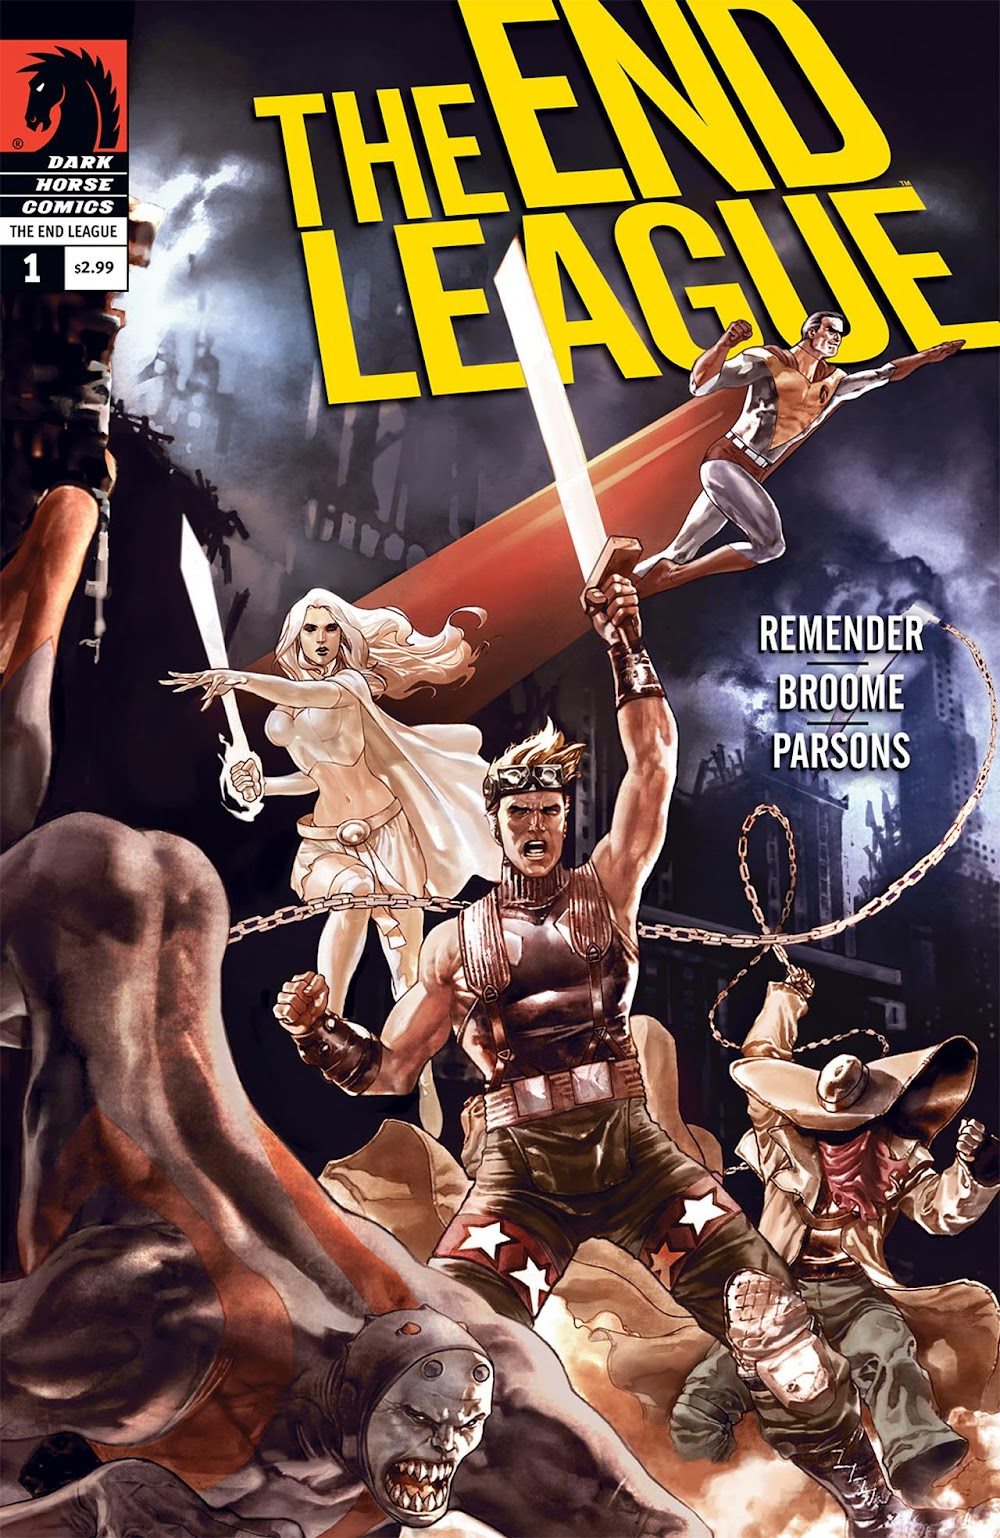 The End League (2007) - complete